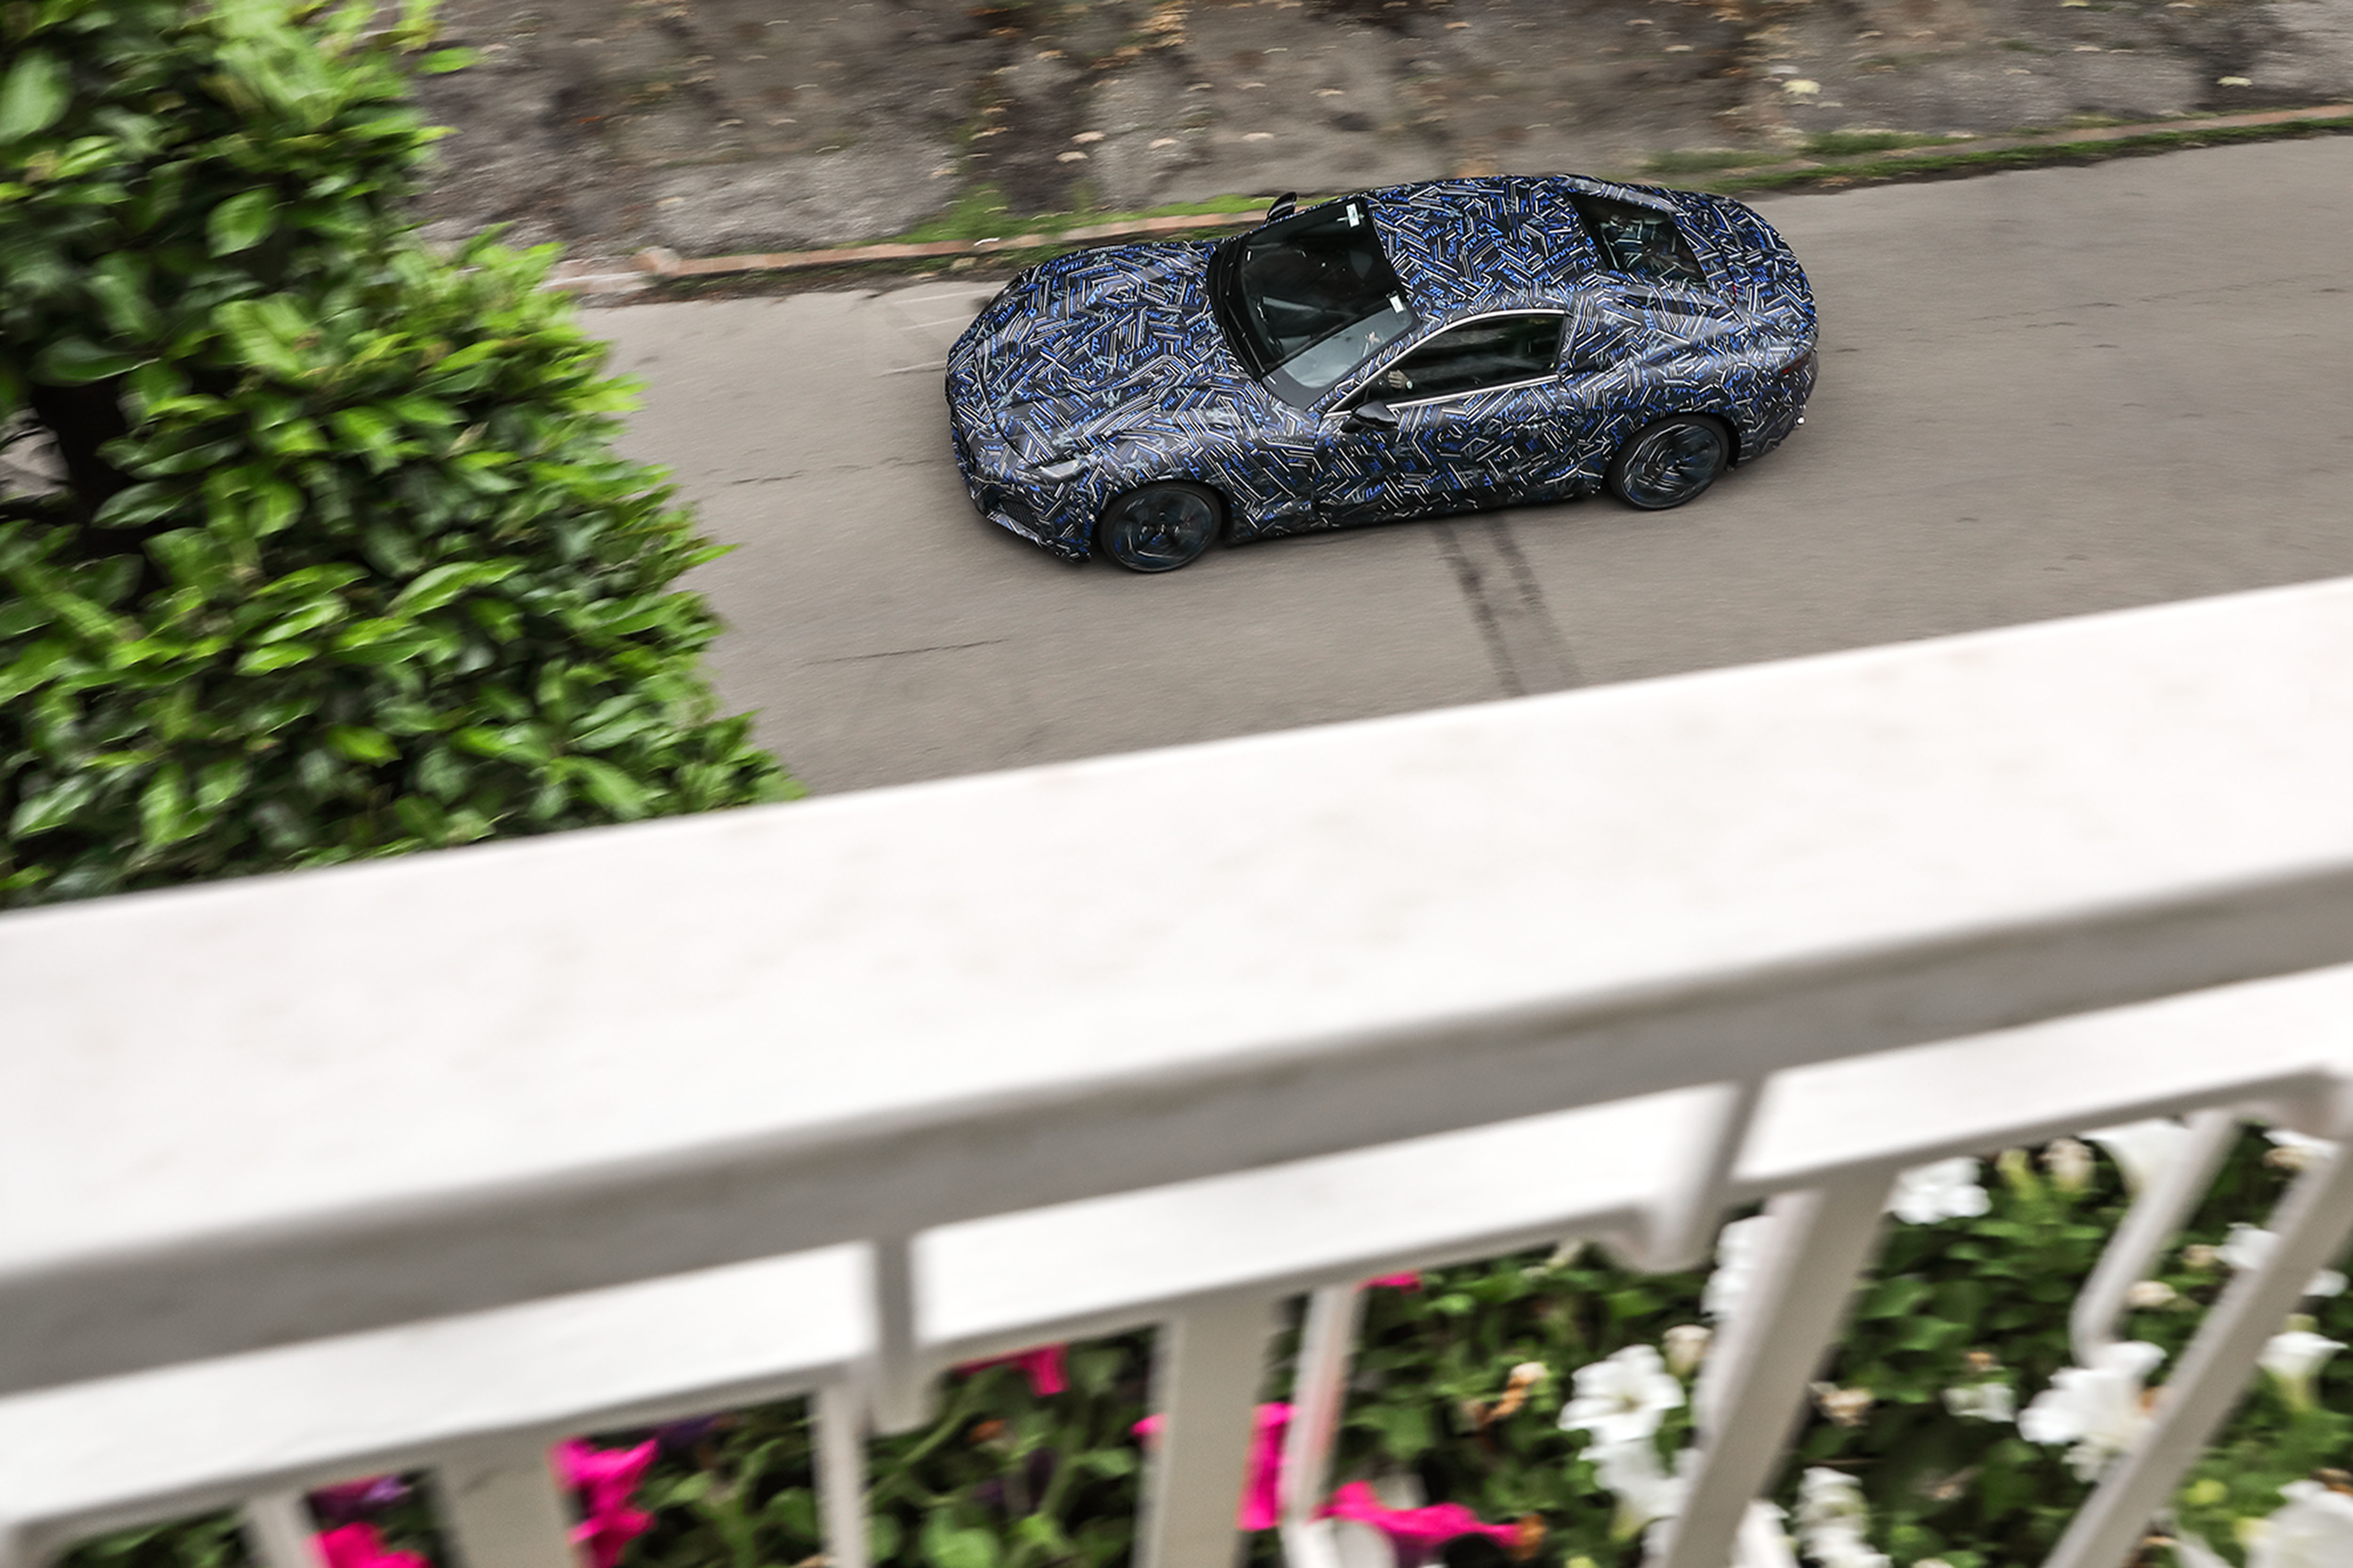 Engineers drove the GranTurismo prototype on roads in Modena for the first time